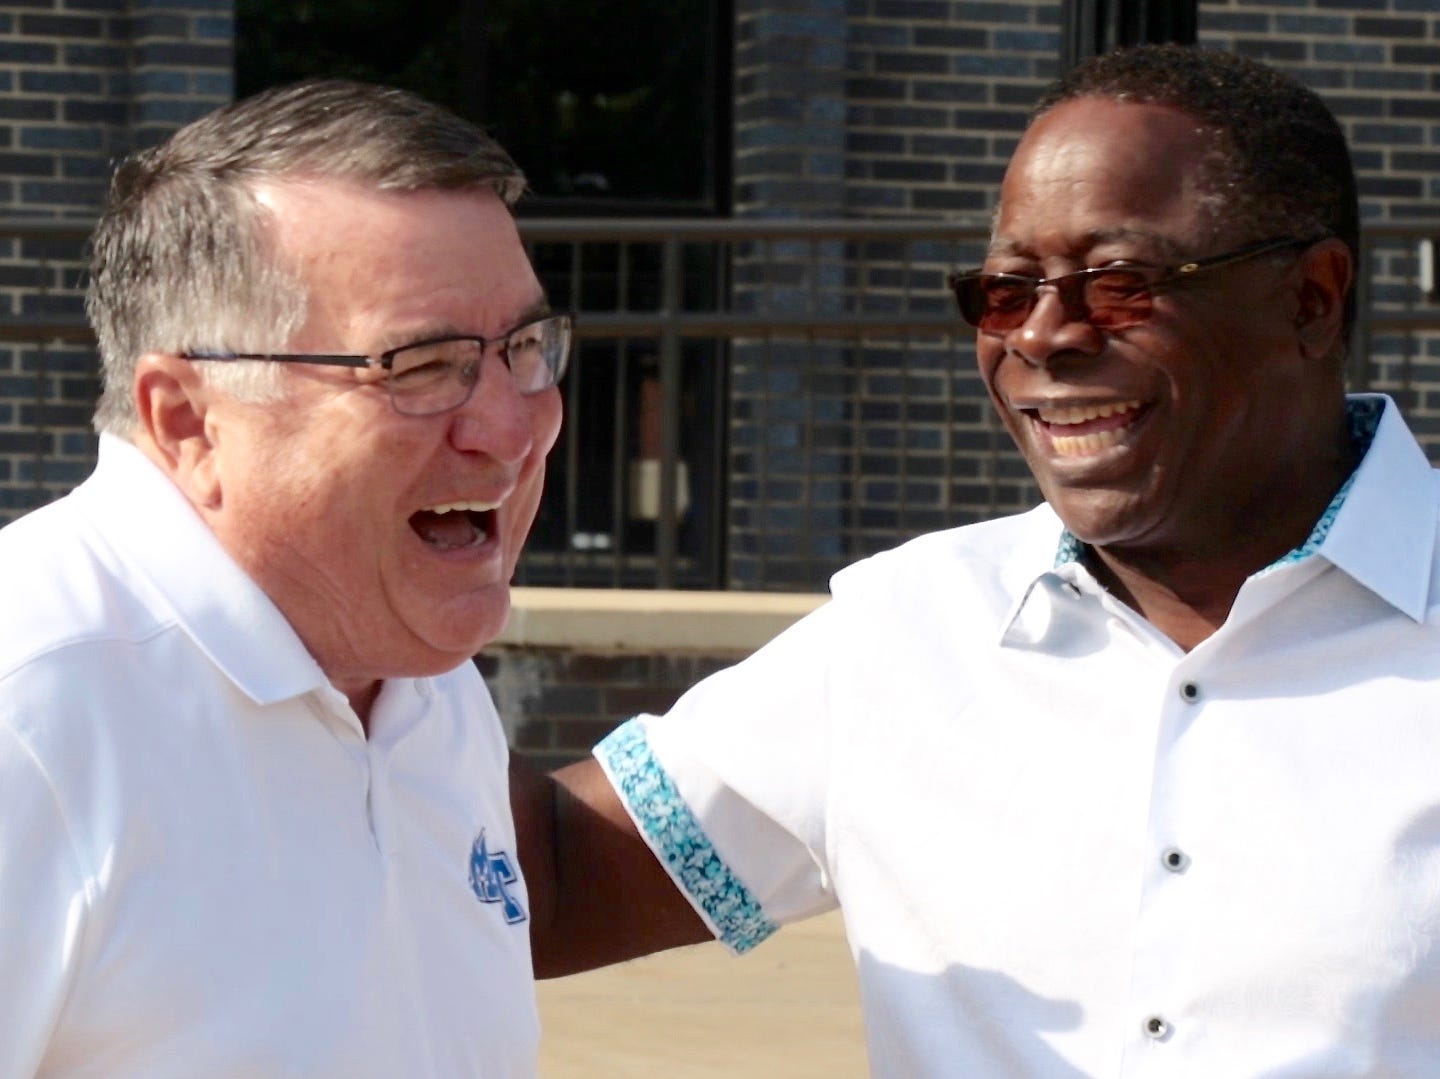 MTSU Women's Basketball Head Coach Rick Insell, left, shares a laugh with President Sidney A. McPhee during Friday's We-Haul efforts to welcome incoming students to campus.